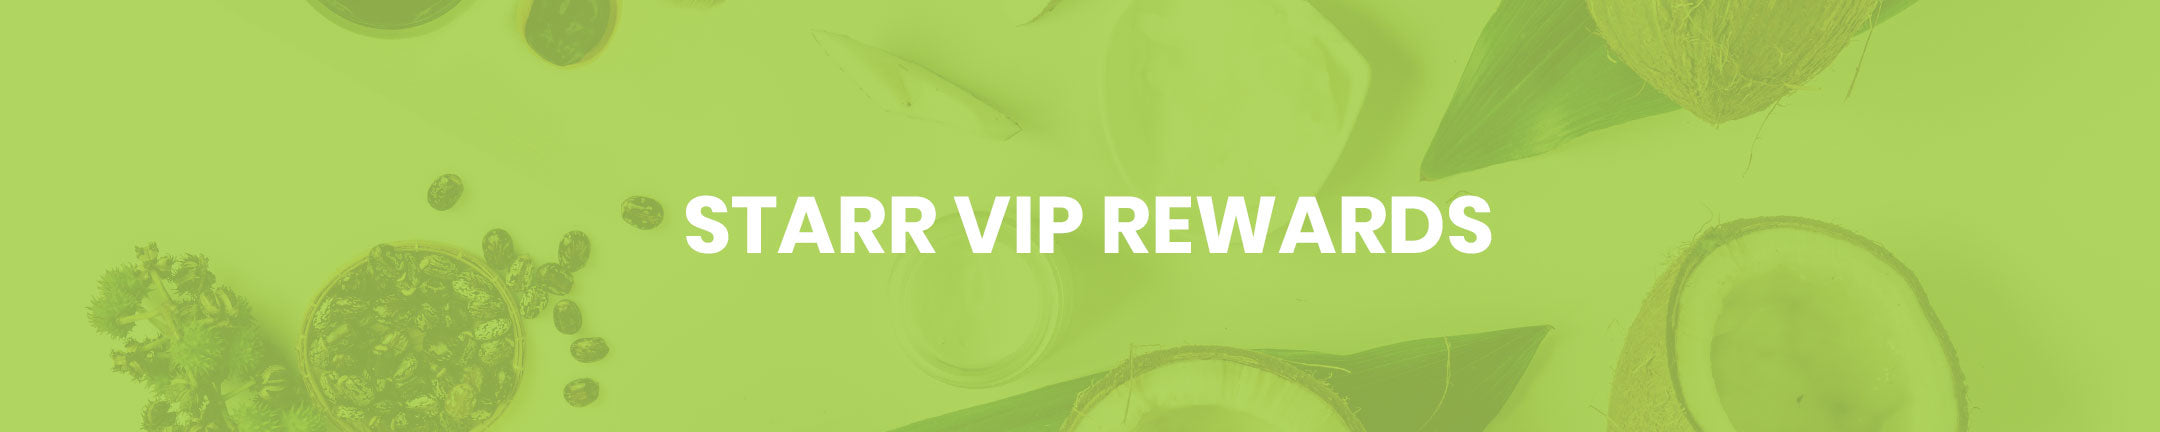 Starr VIP Rewards